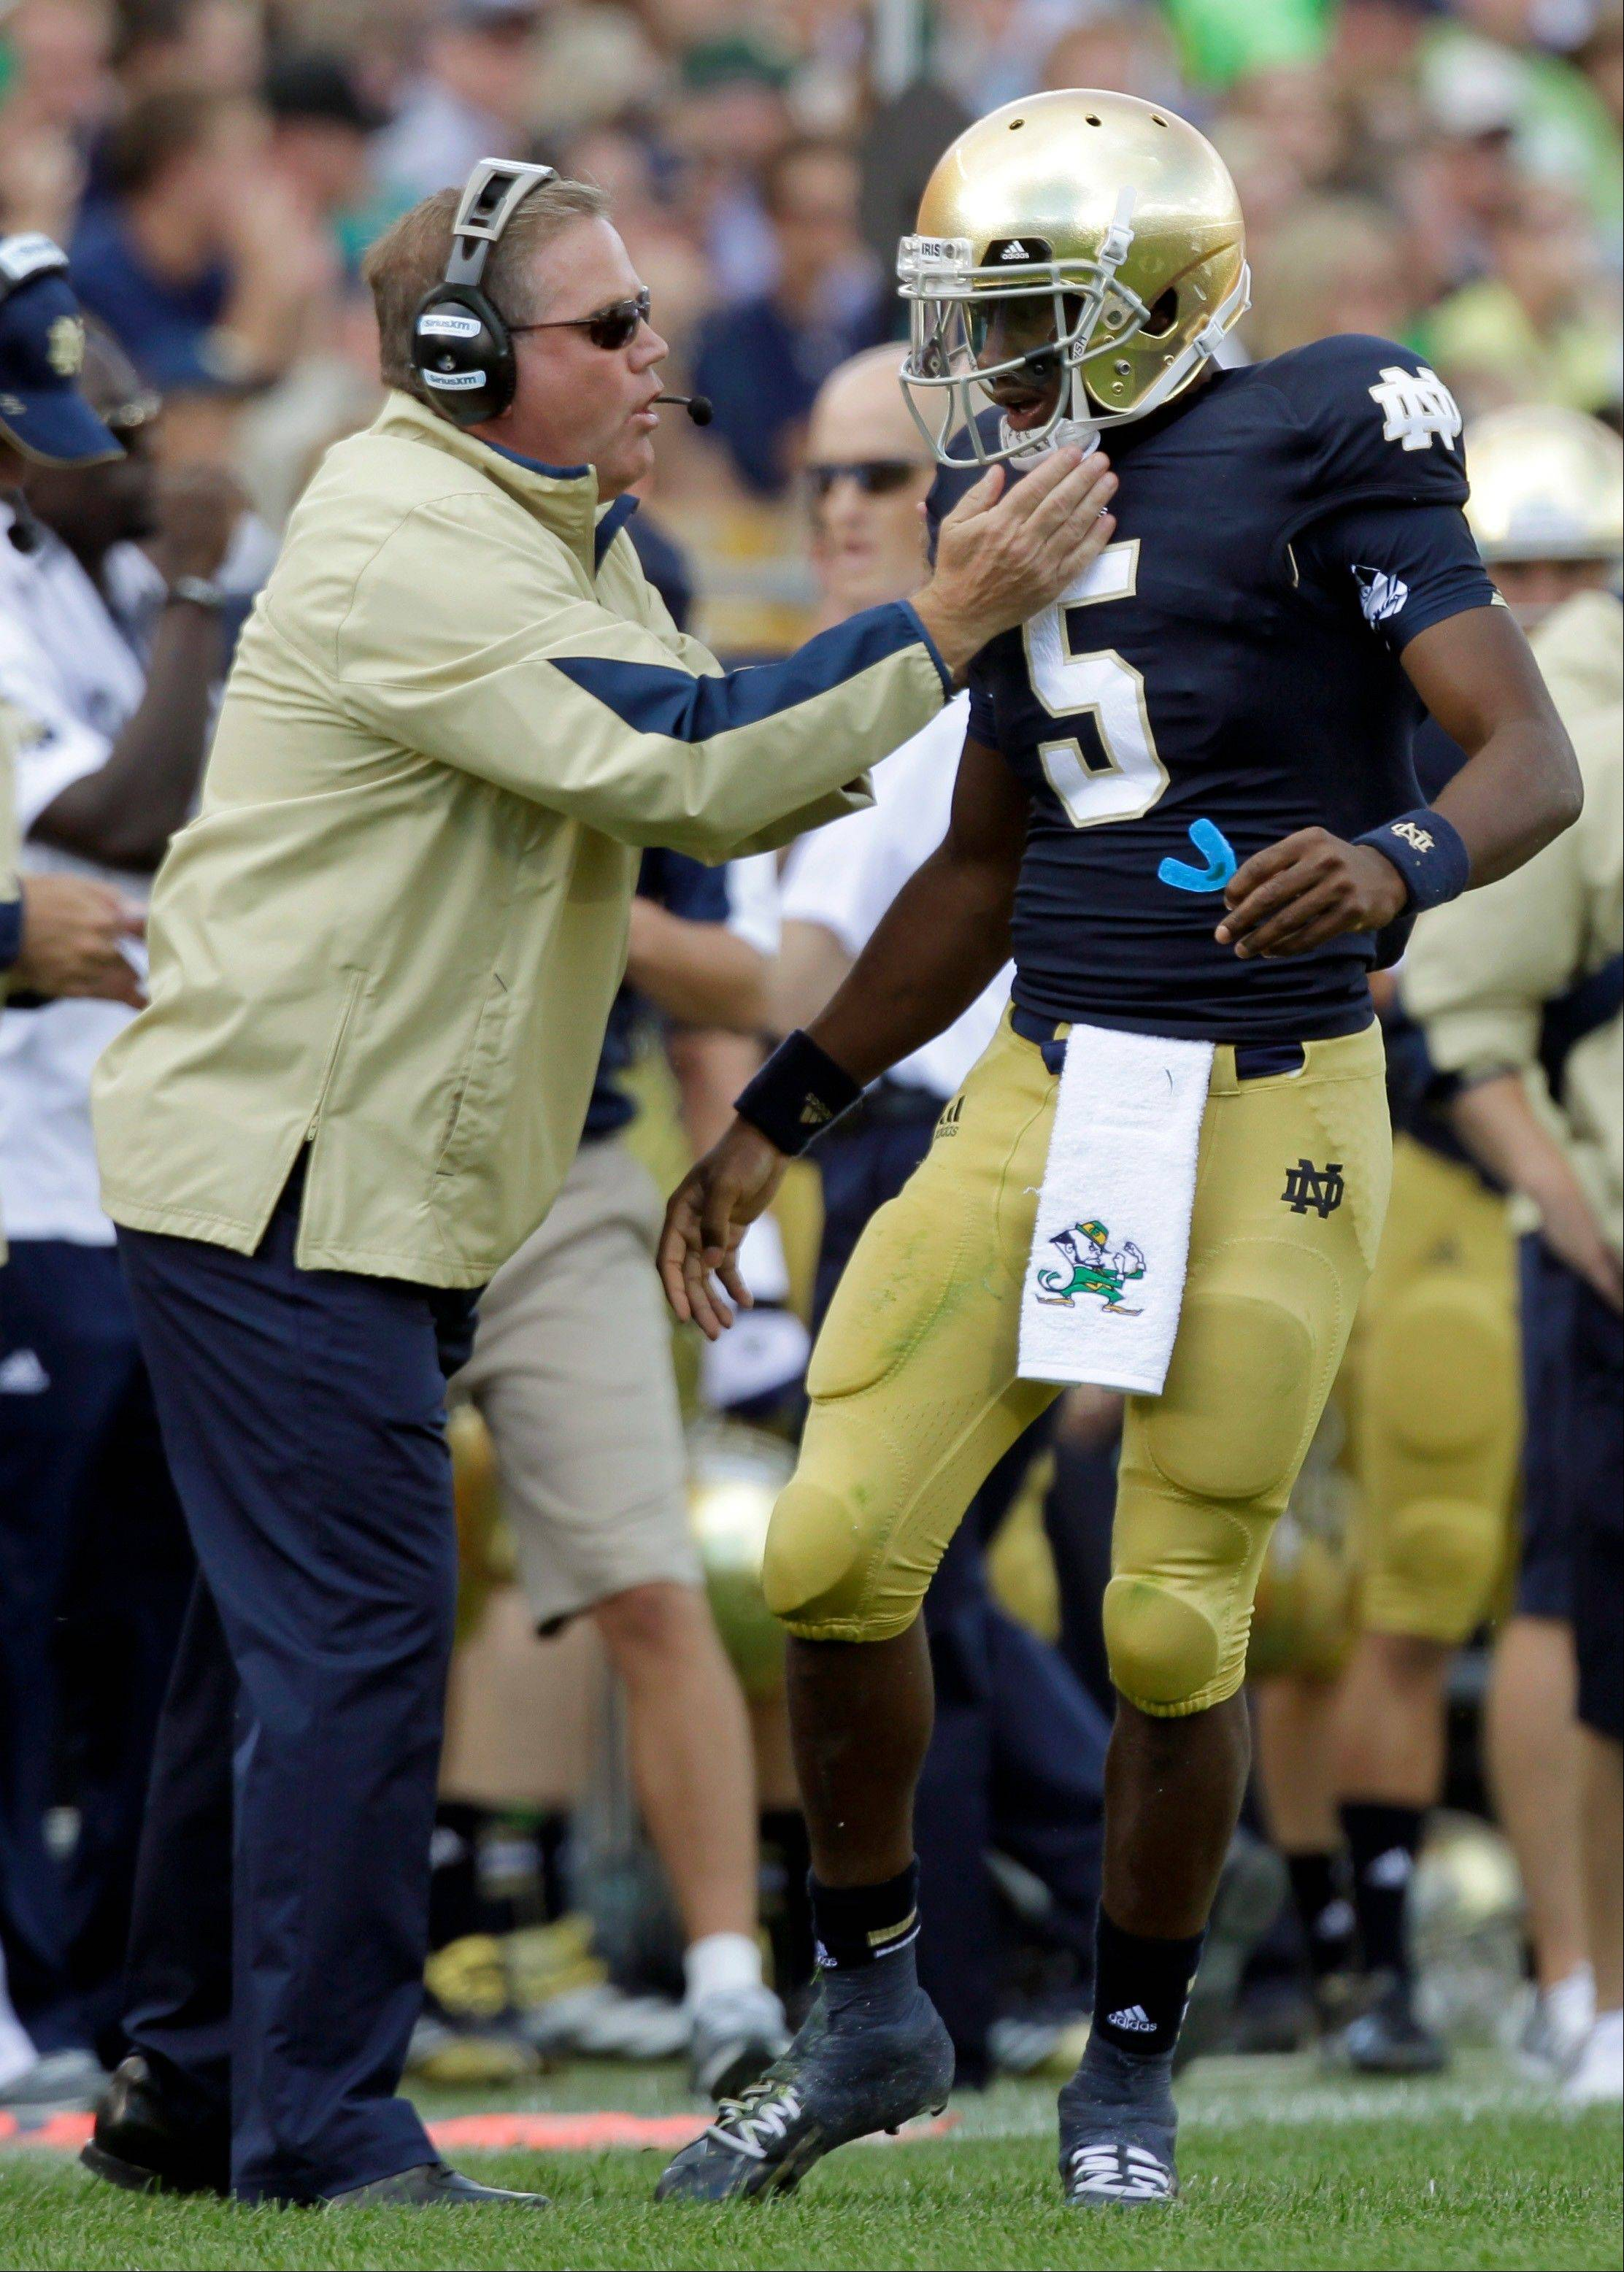 Notre Dame coach Brian Kelly, left, gives a play to quarterback Everett Golson during the first half of an NCAA college football game against Purdue in South Bend, Ind., Saturday.